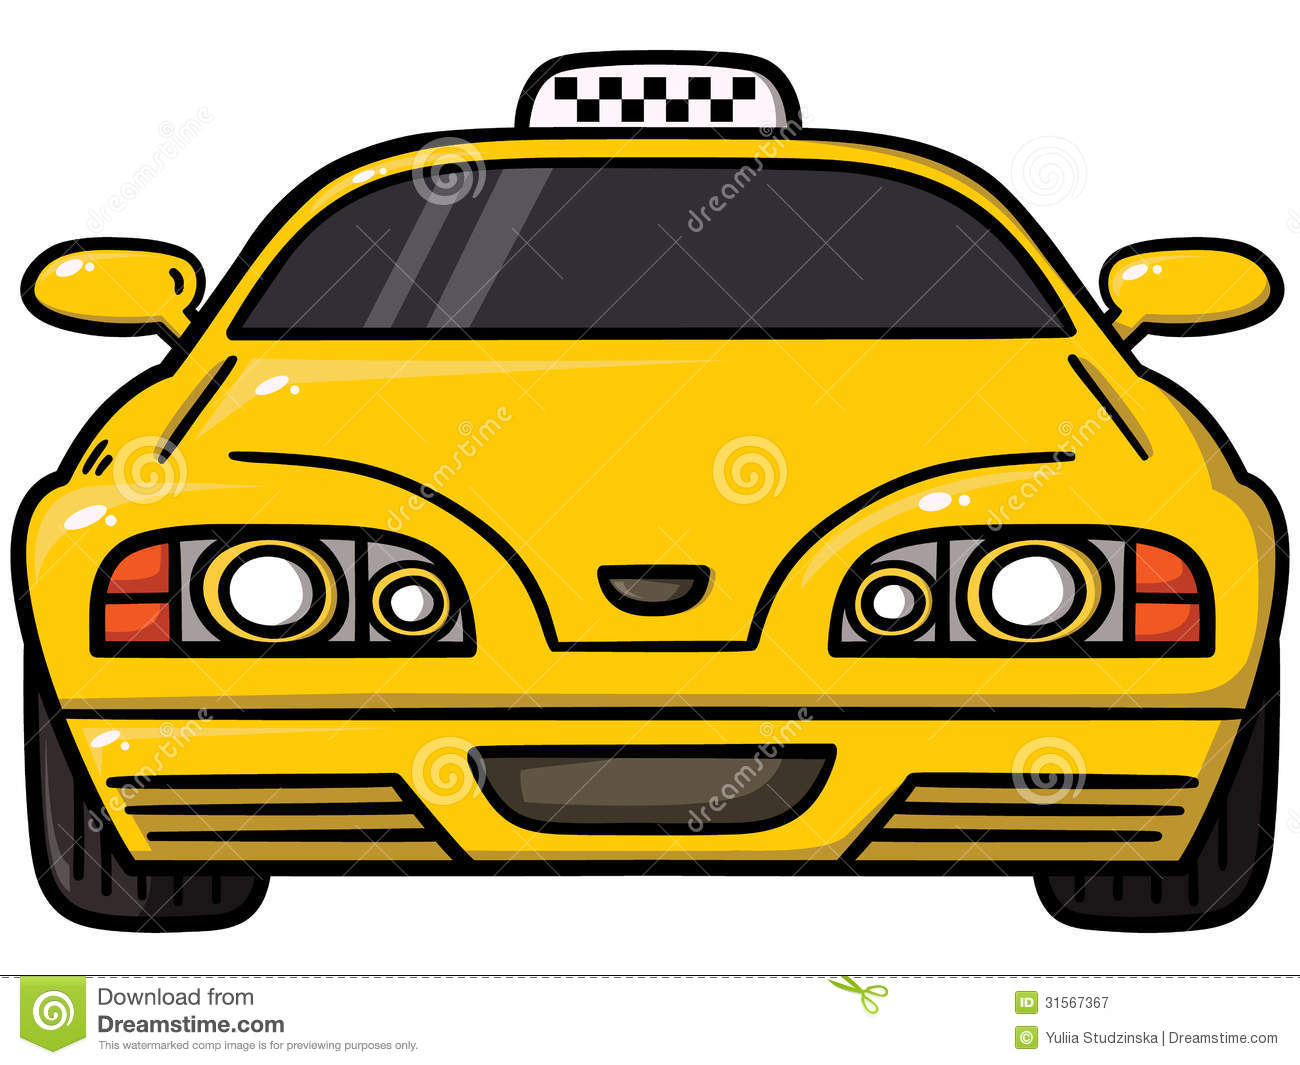 taxi cab business plan If you want to attach your car with ola and uber cabs, then you have to follow  down below information which can help you to start a business.